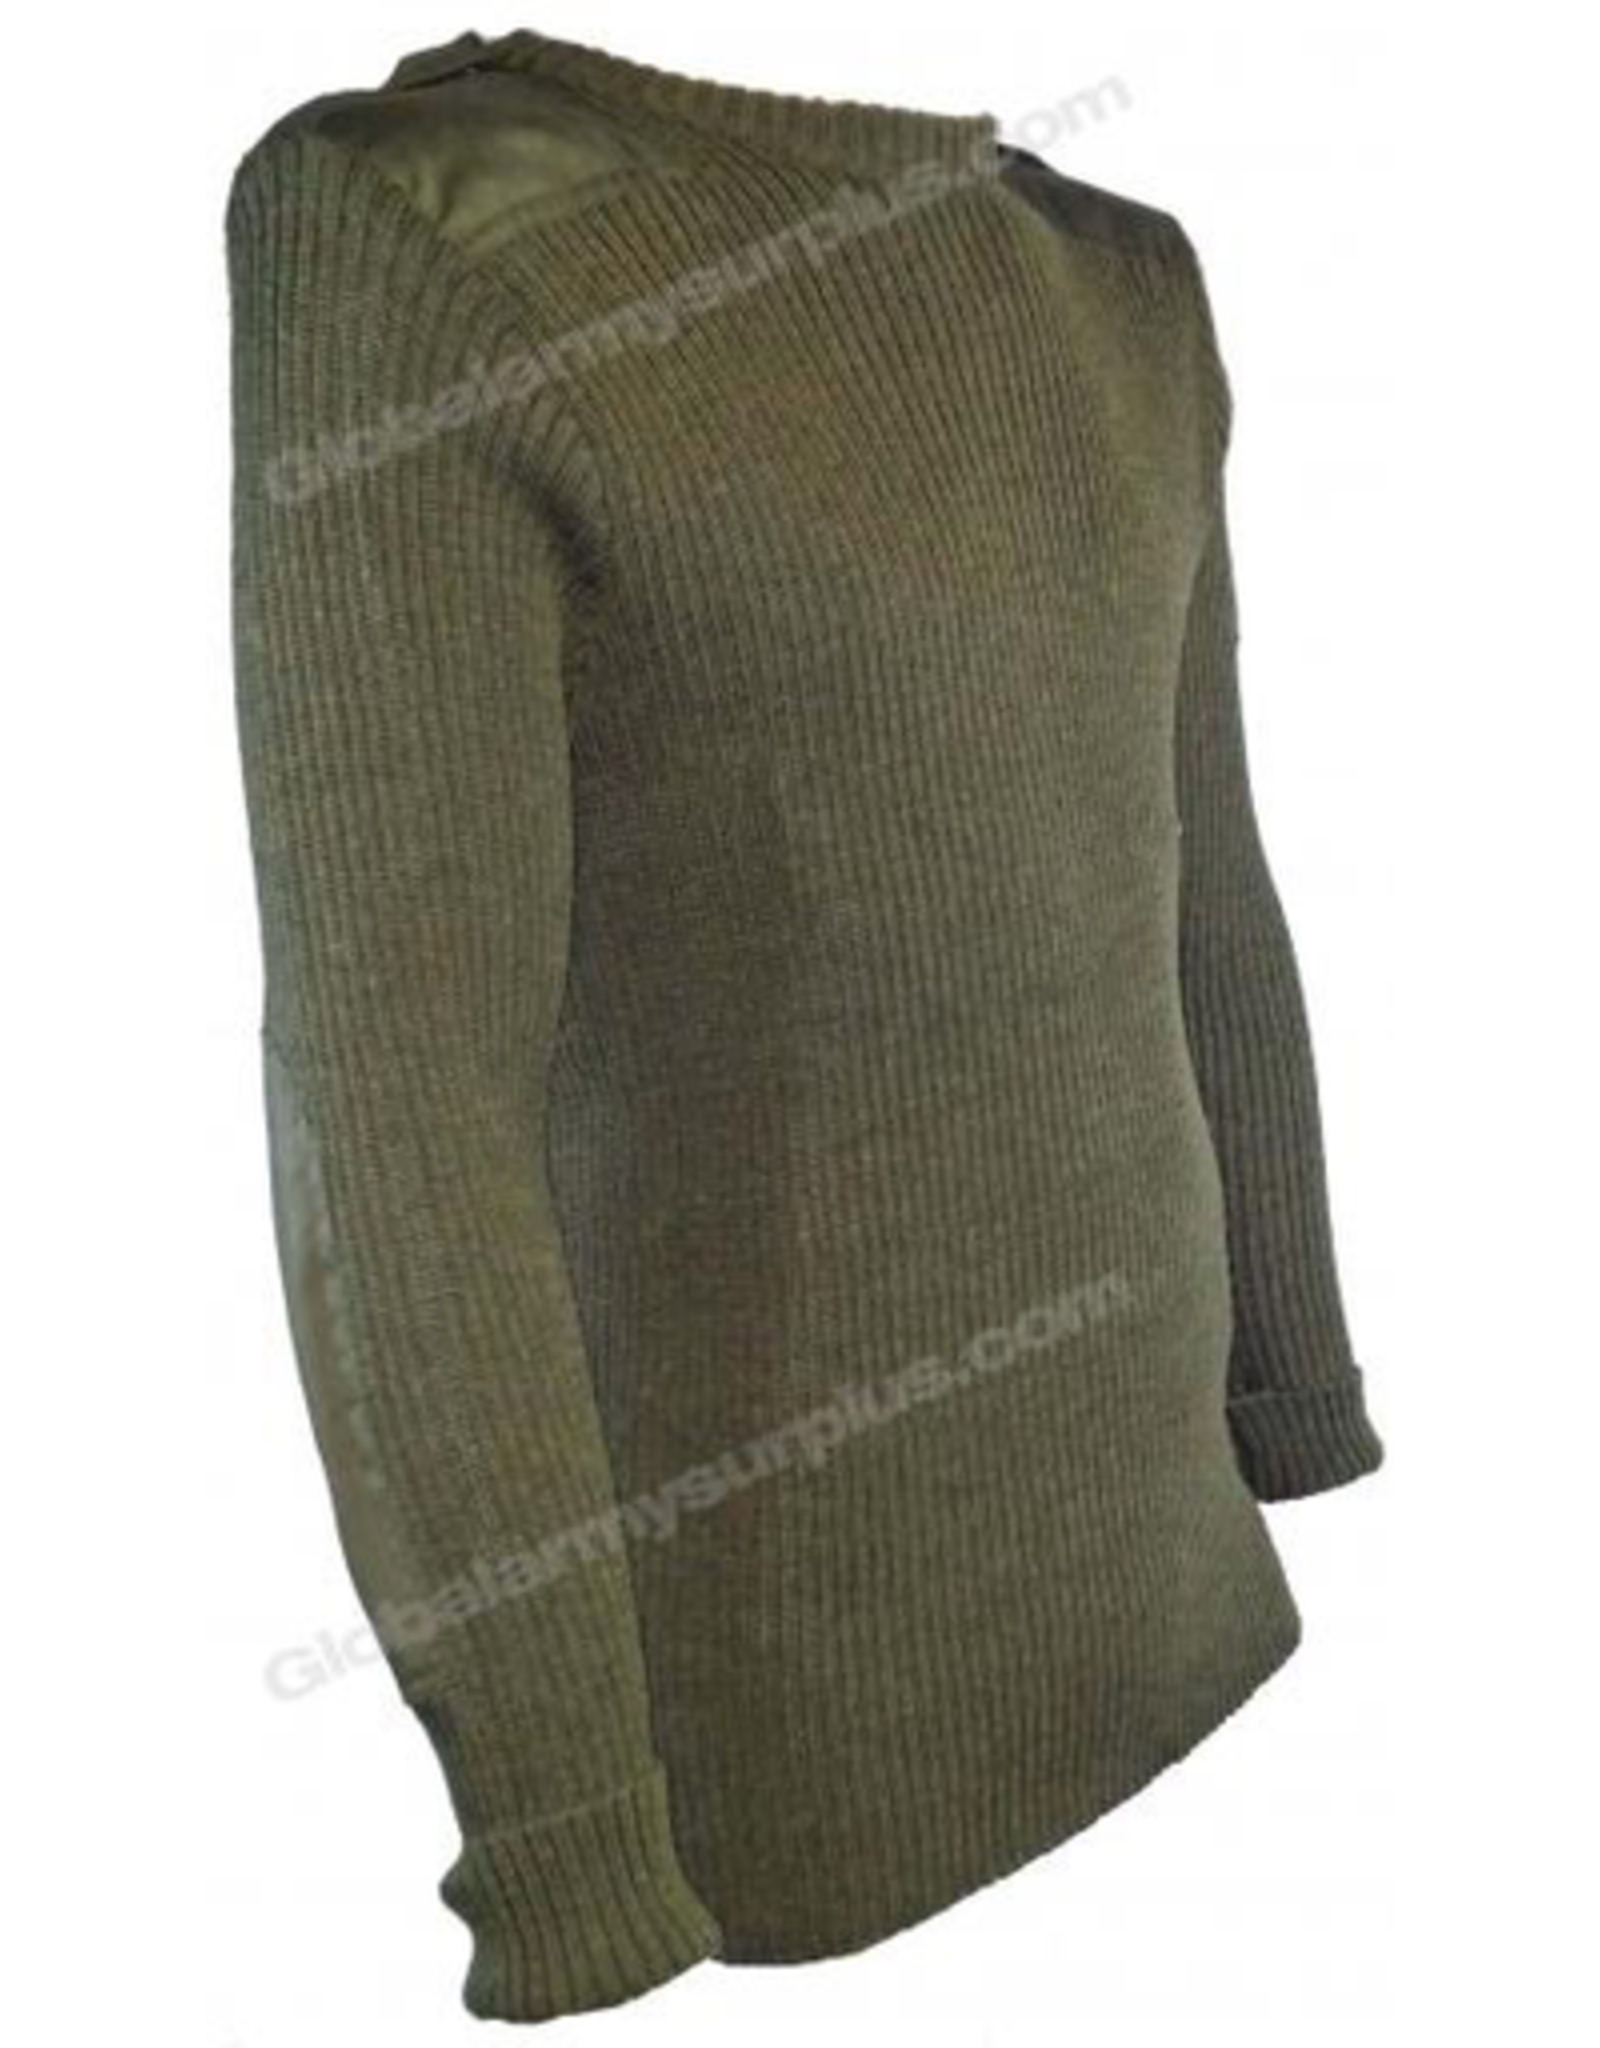 St. Gilles Surplus Olive Drab Wool Sweater